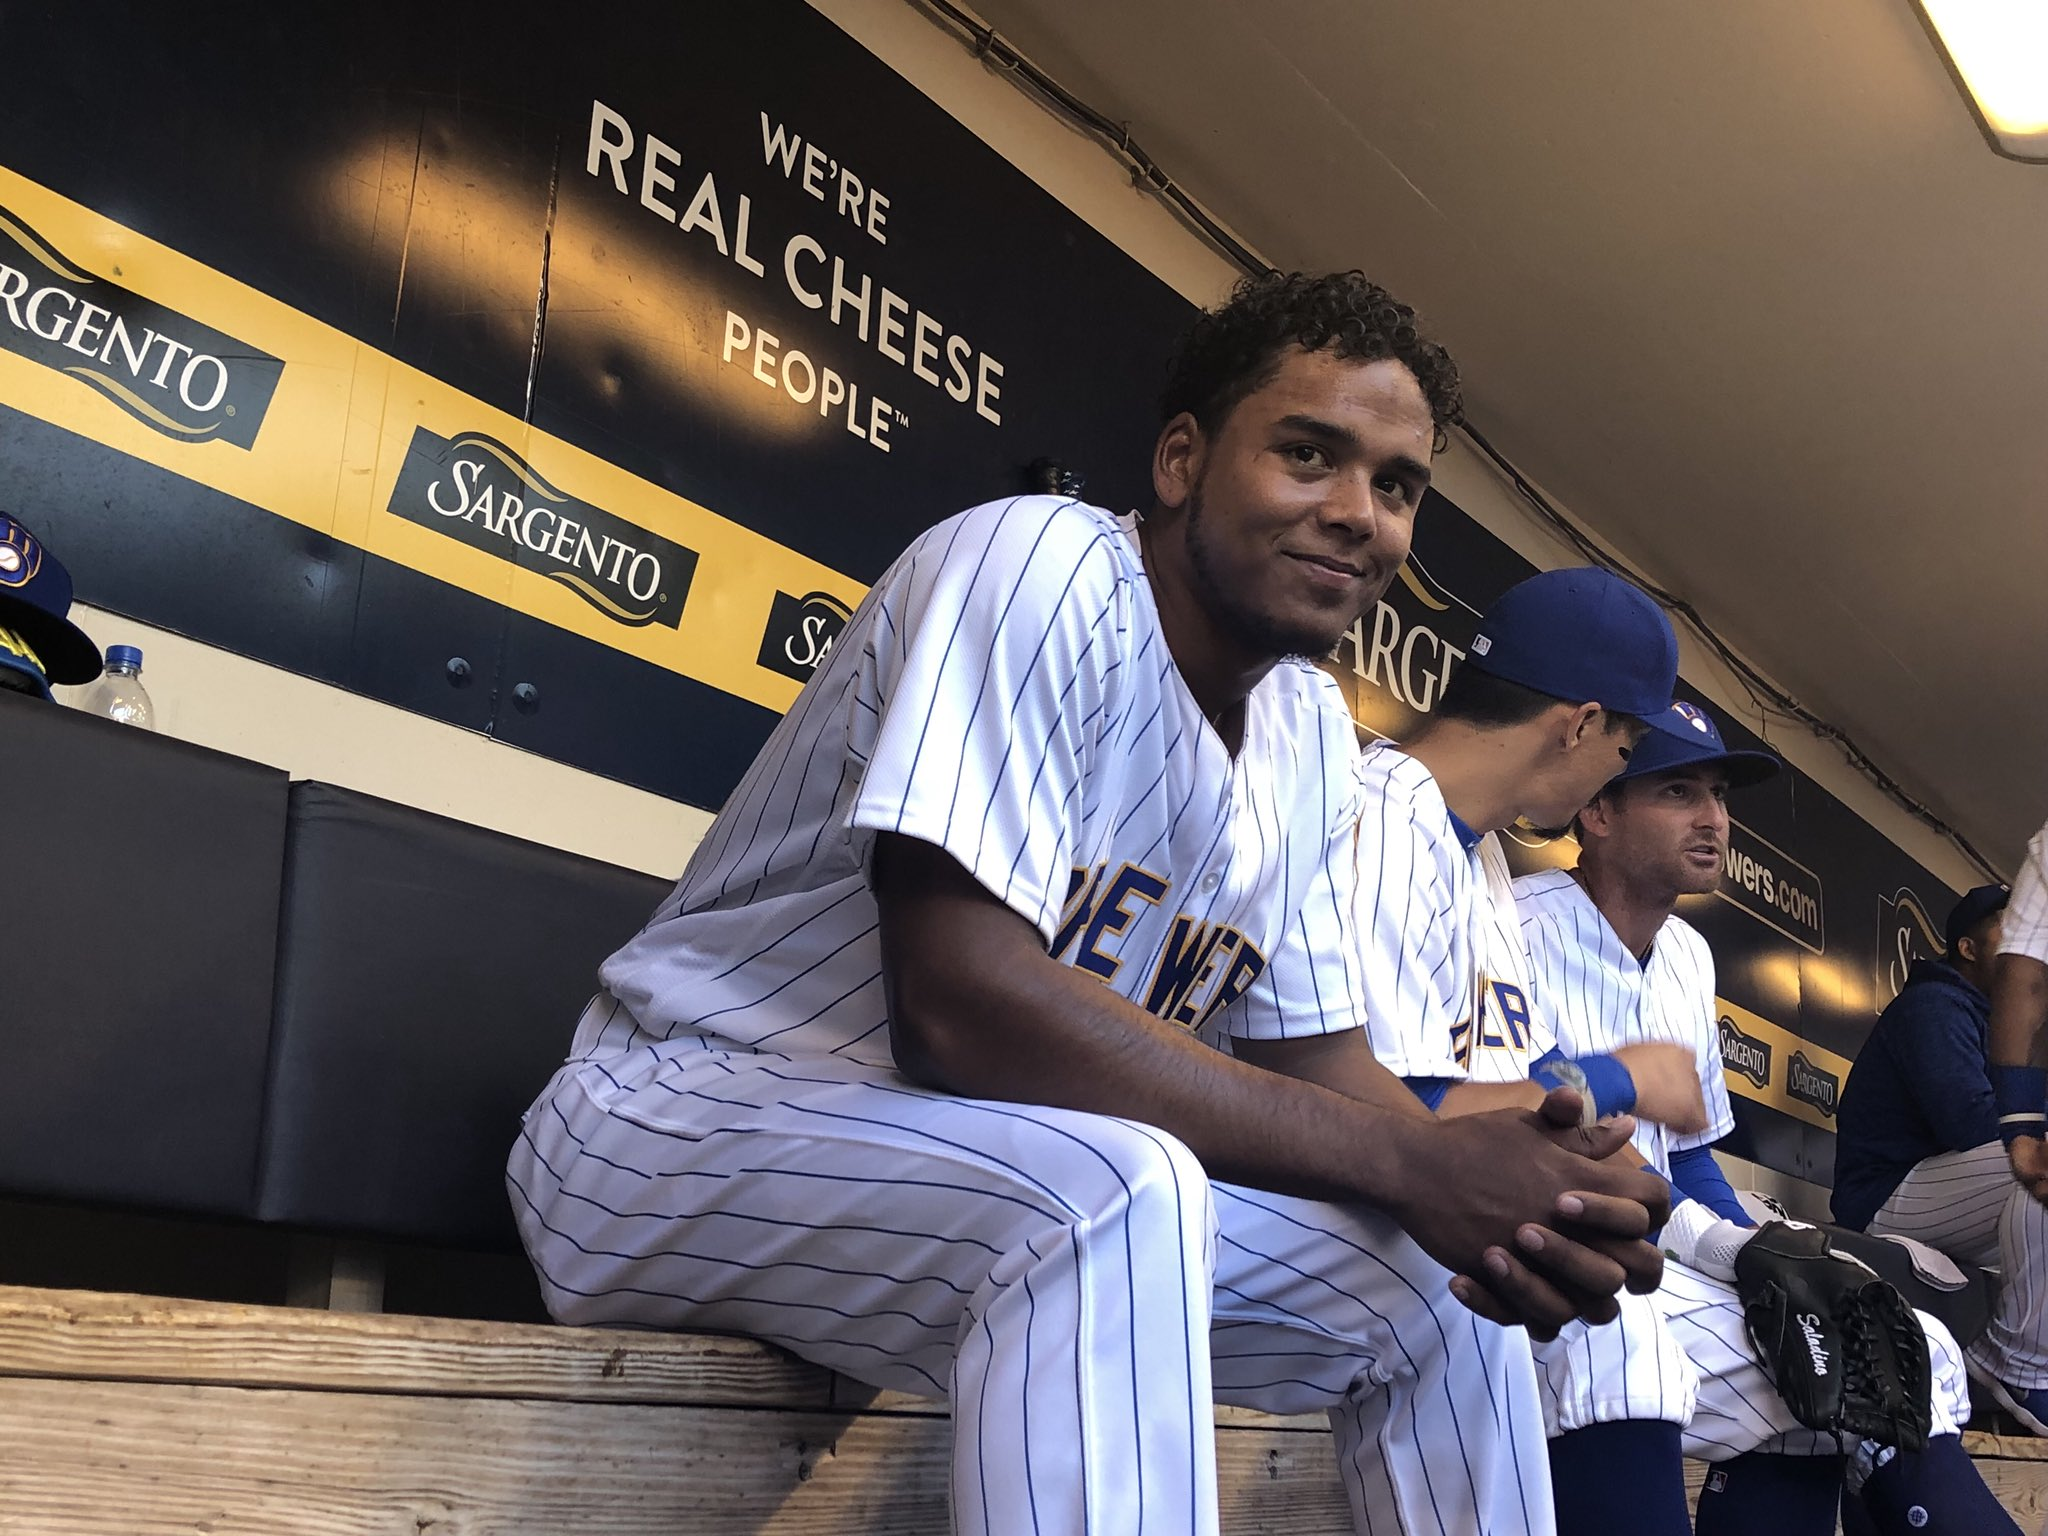 .@FreddyPeraltaRD is ready to light it up at Miller Park! Let's #PlayBall! #ThisIsMyCrew https://t.co/hROugYOqop